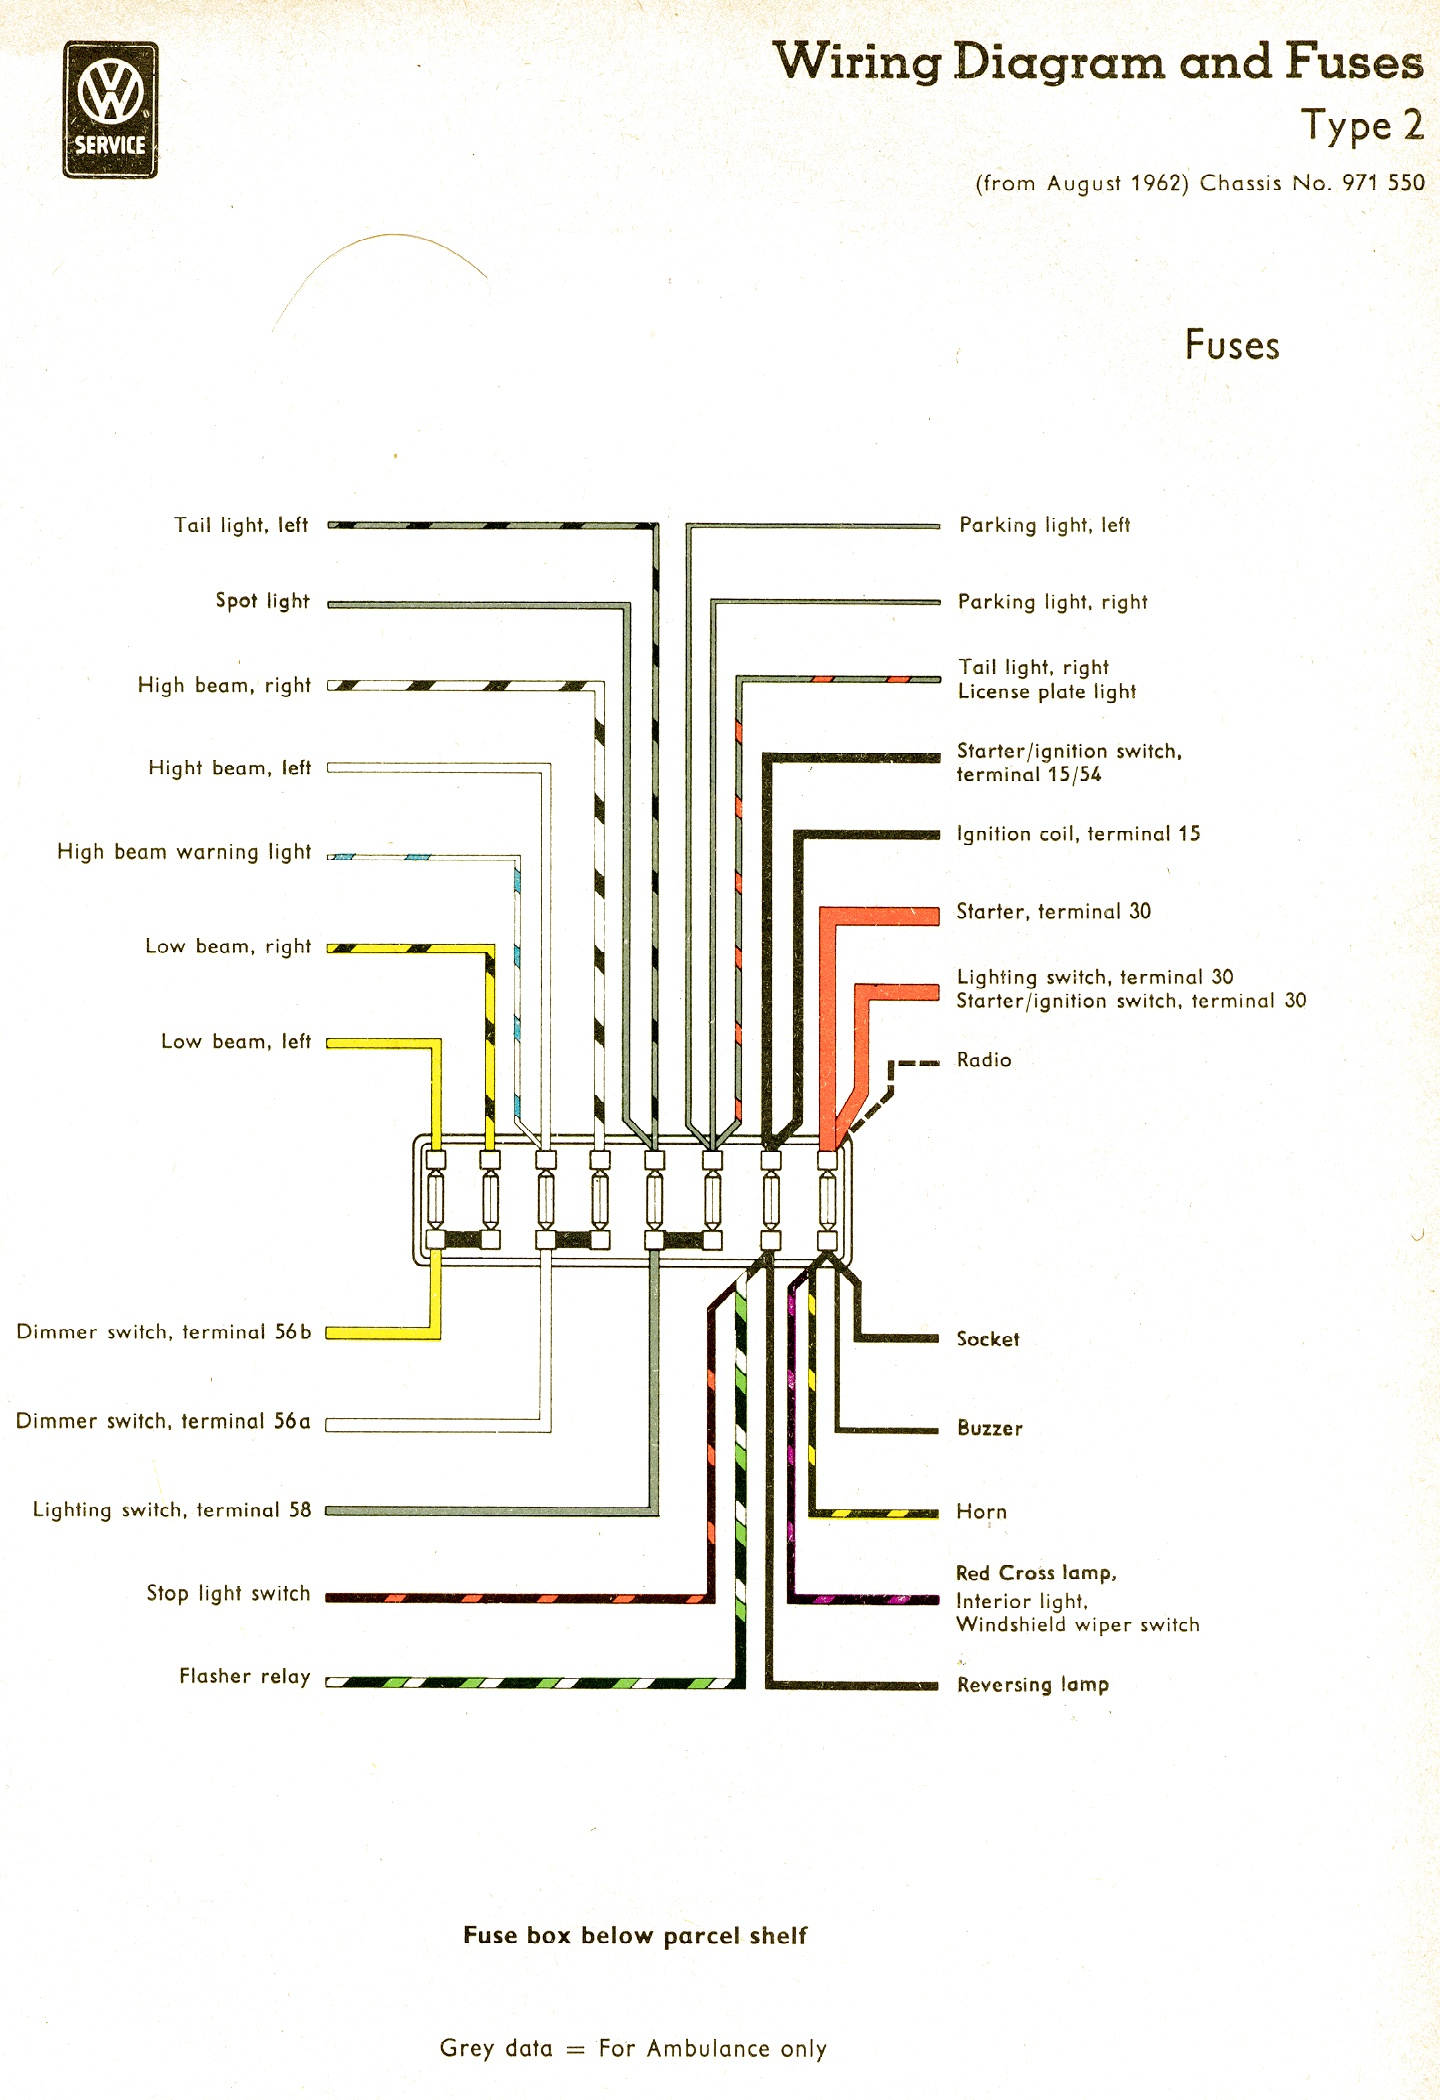 bus 62 fuse vw wiring diagrams fuse box diagram for 1977 chevy c10 at readyjetset.co